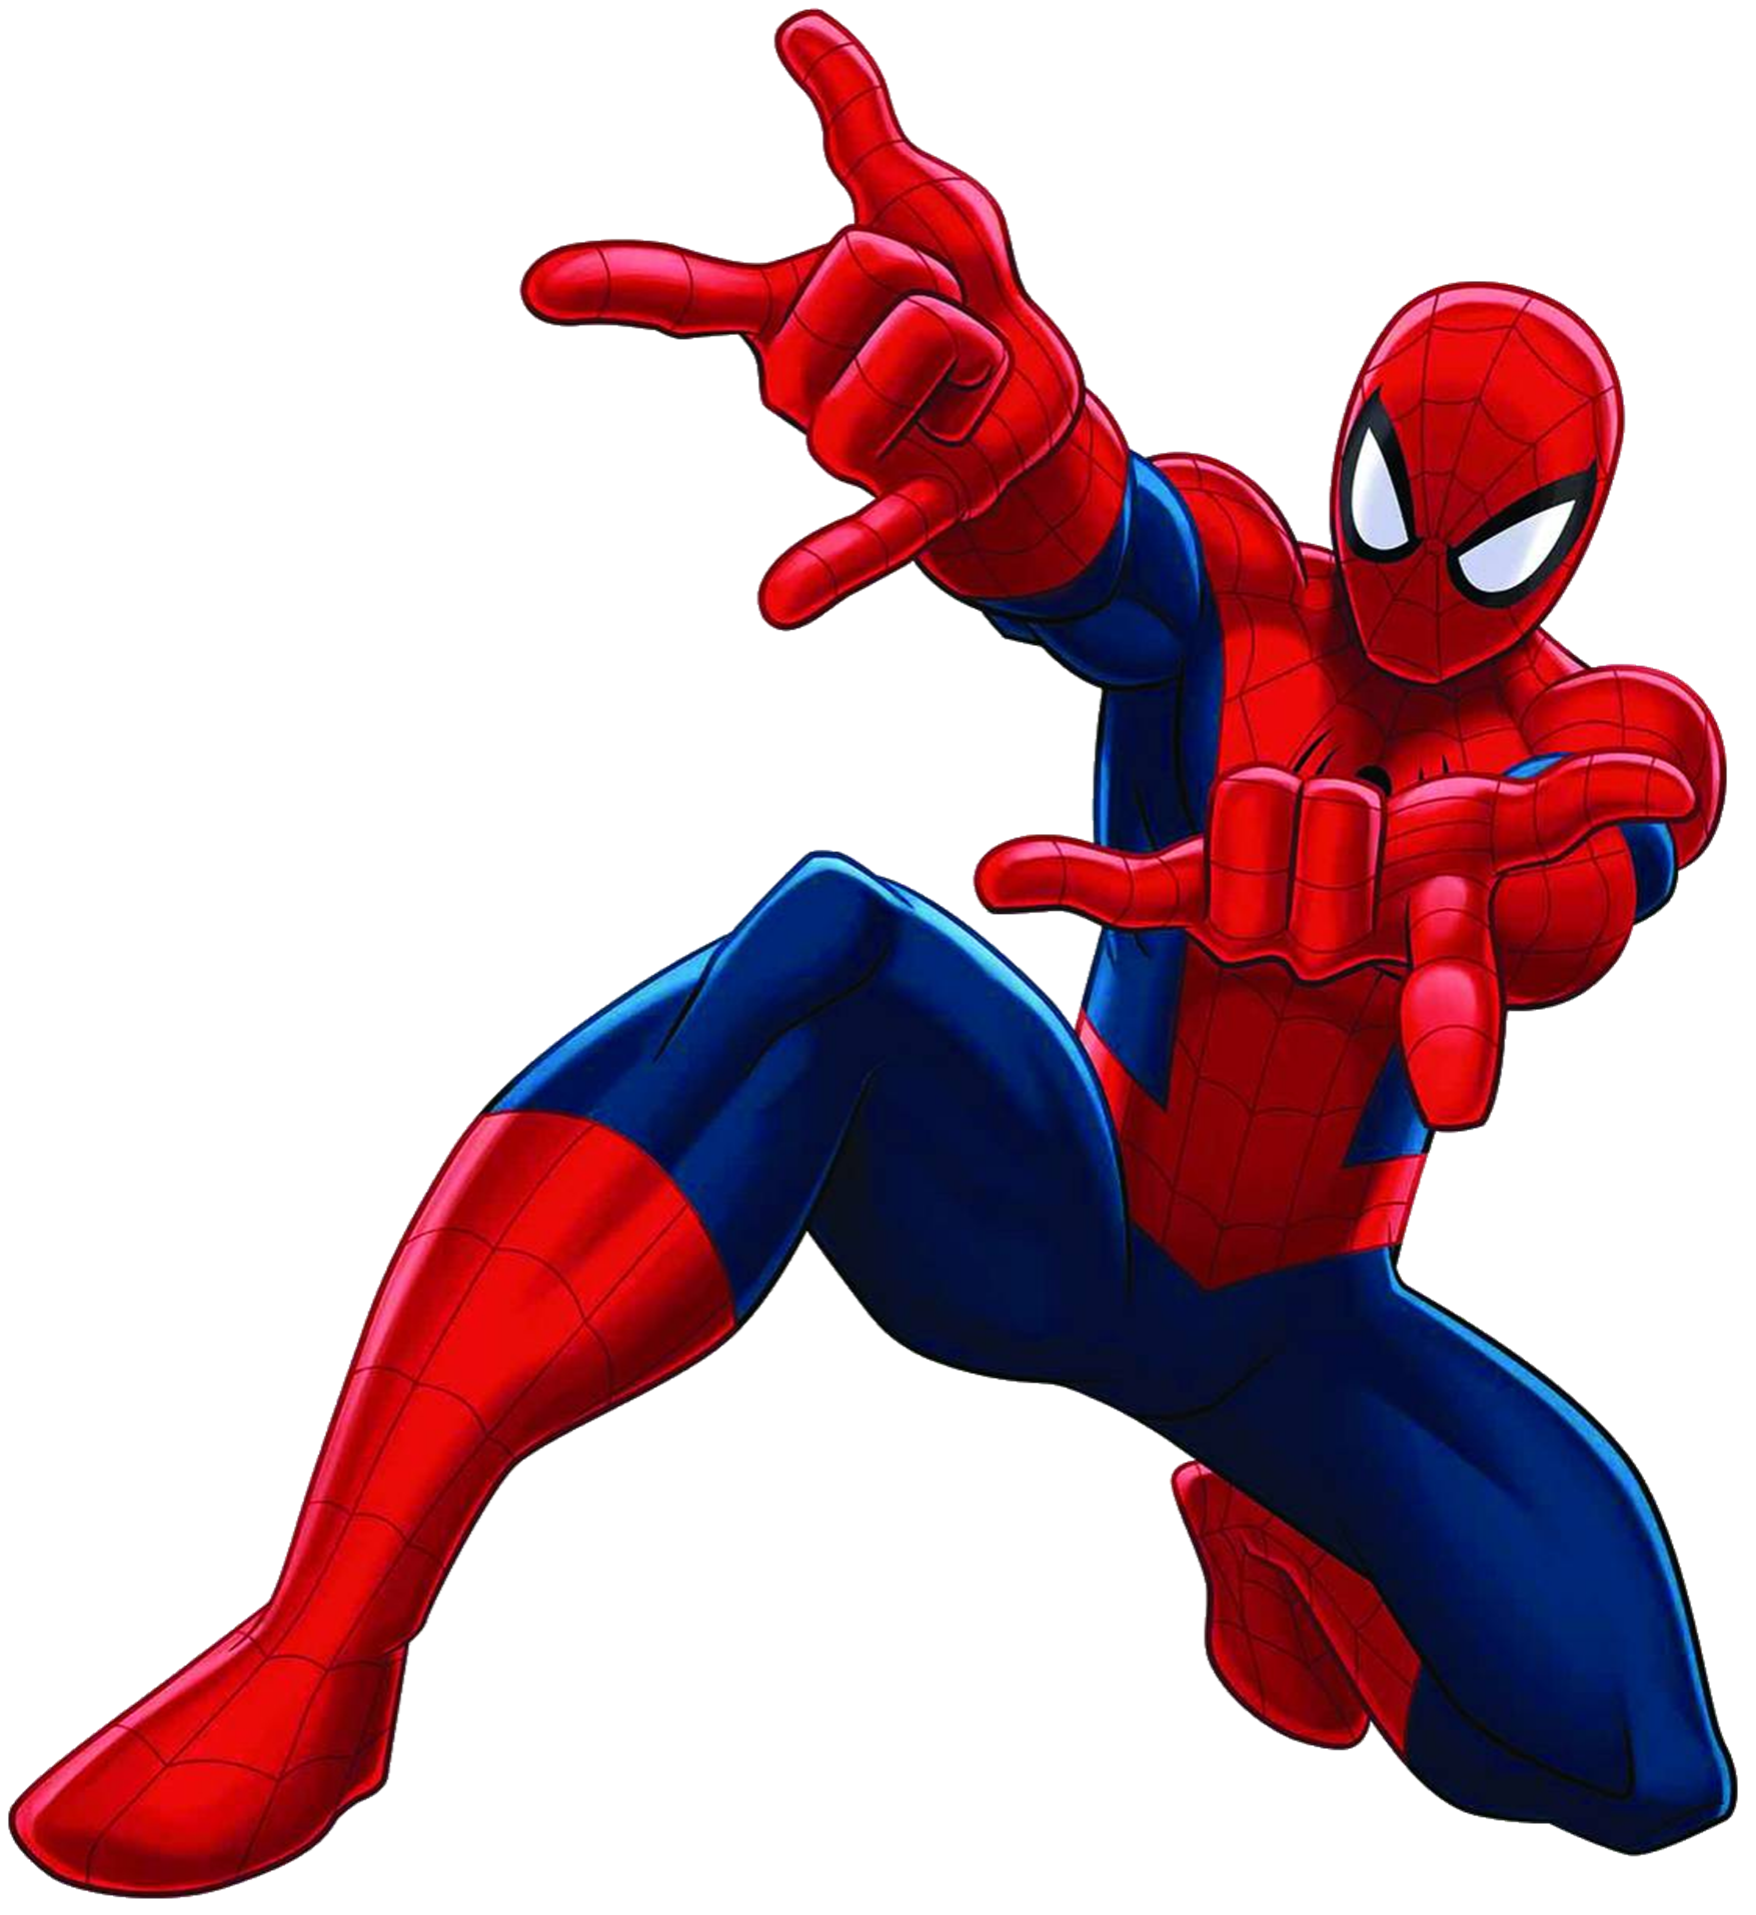 Free comic book clipart graphic royalty free library Spiderman PNG Image - PurePNG | Free transparent CC0 PNG Image Library graphic royalty free library